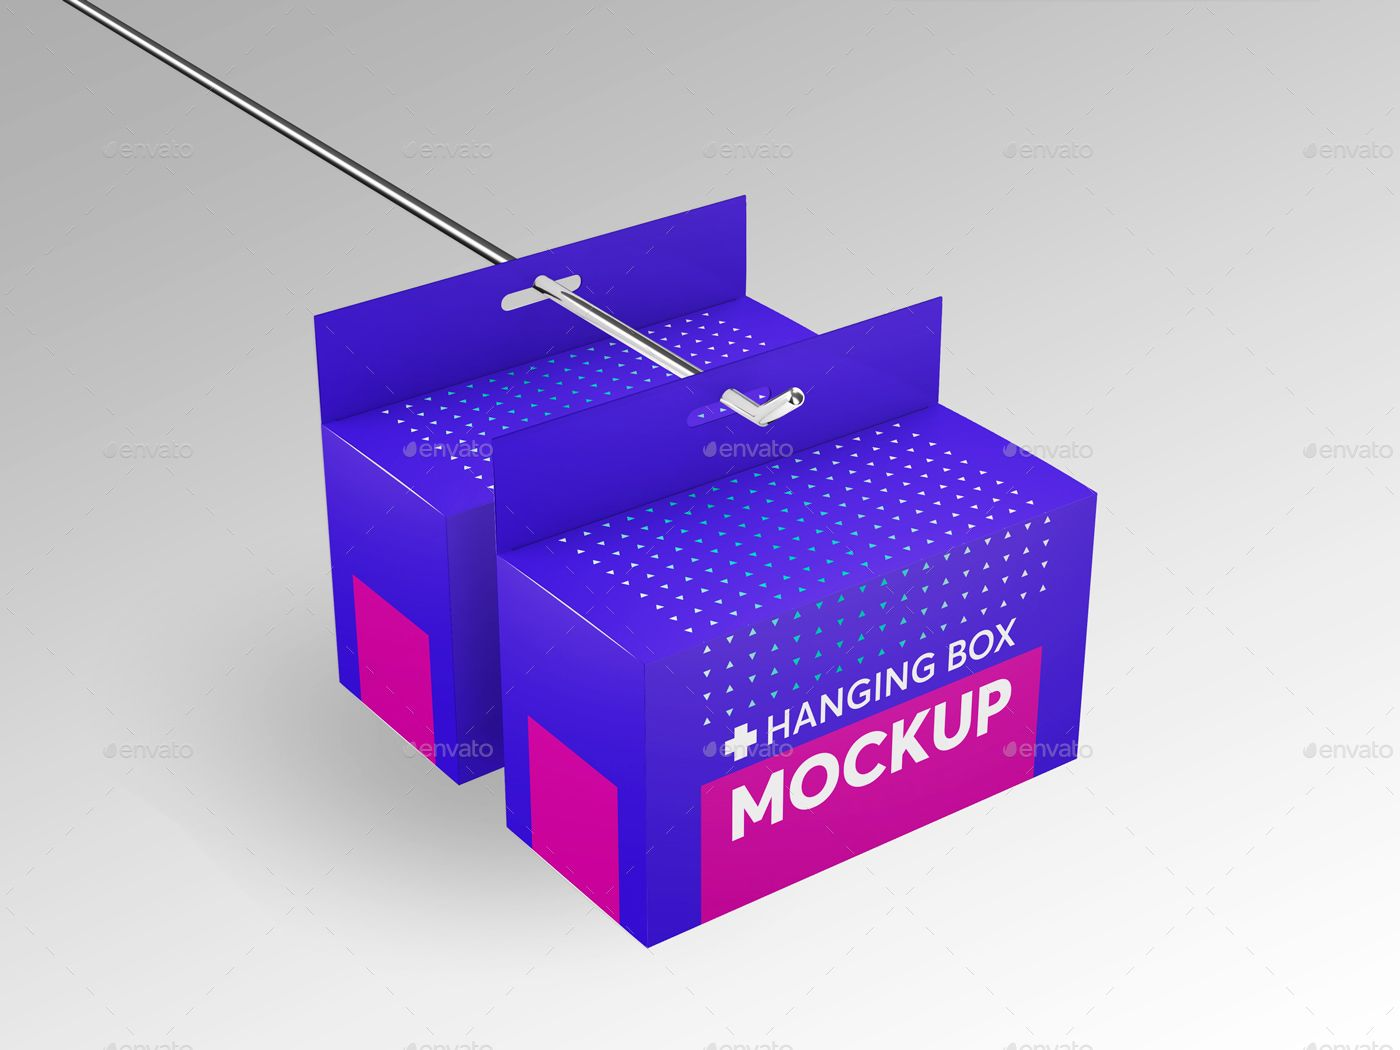 Download Hanging Rectangle Box Mockups V 2 Box Mockup Box Packaging Design Packaging Design